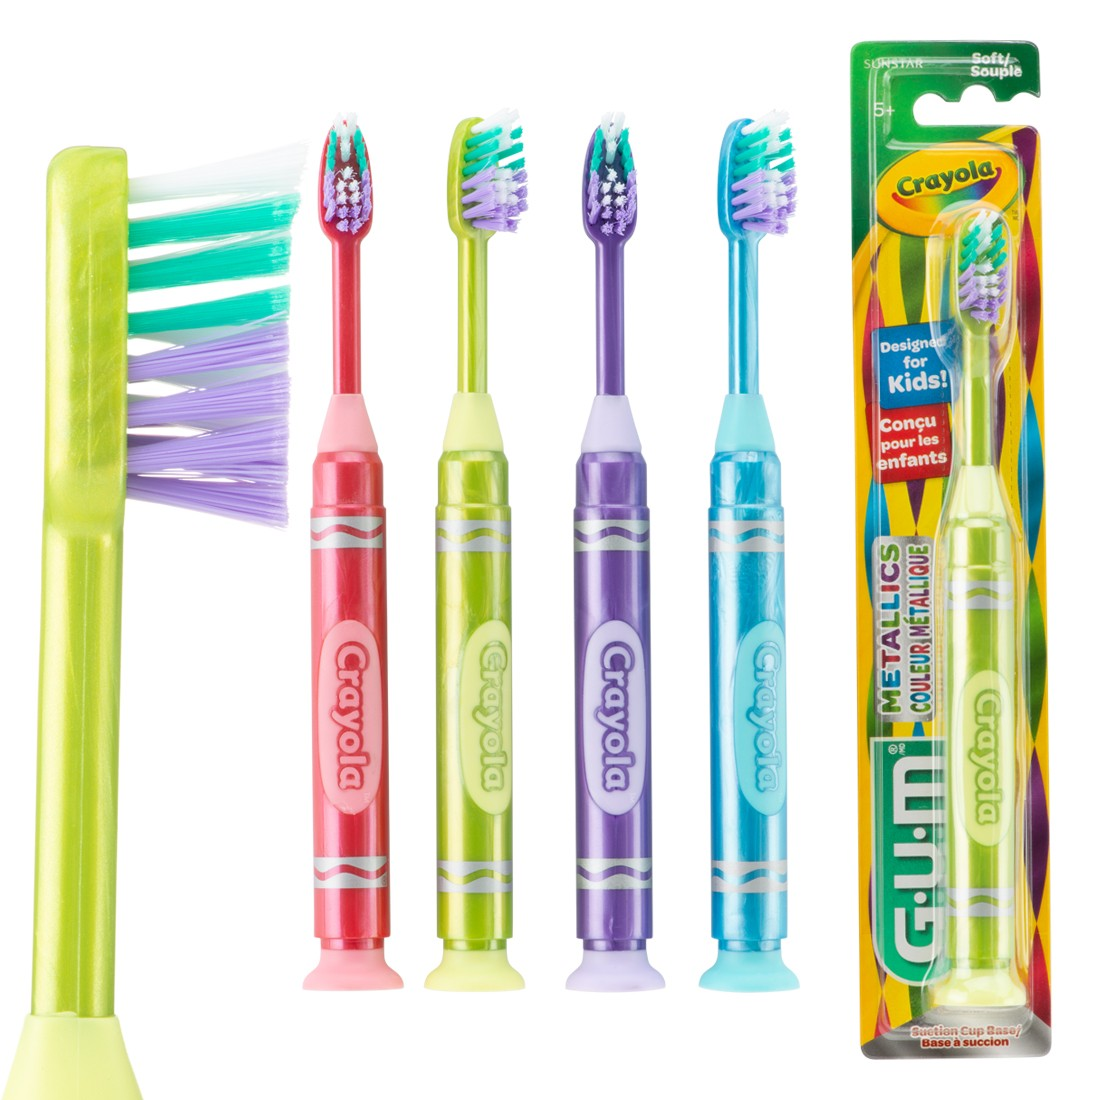 GUM® Crayola™ Metallic Marker Youth Toothbrushes [image]